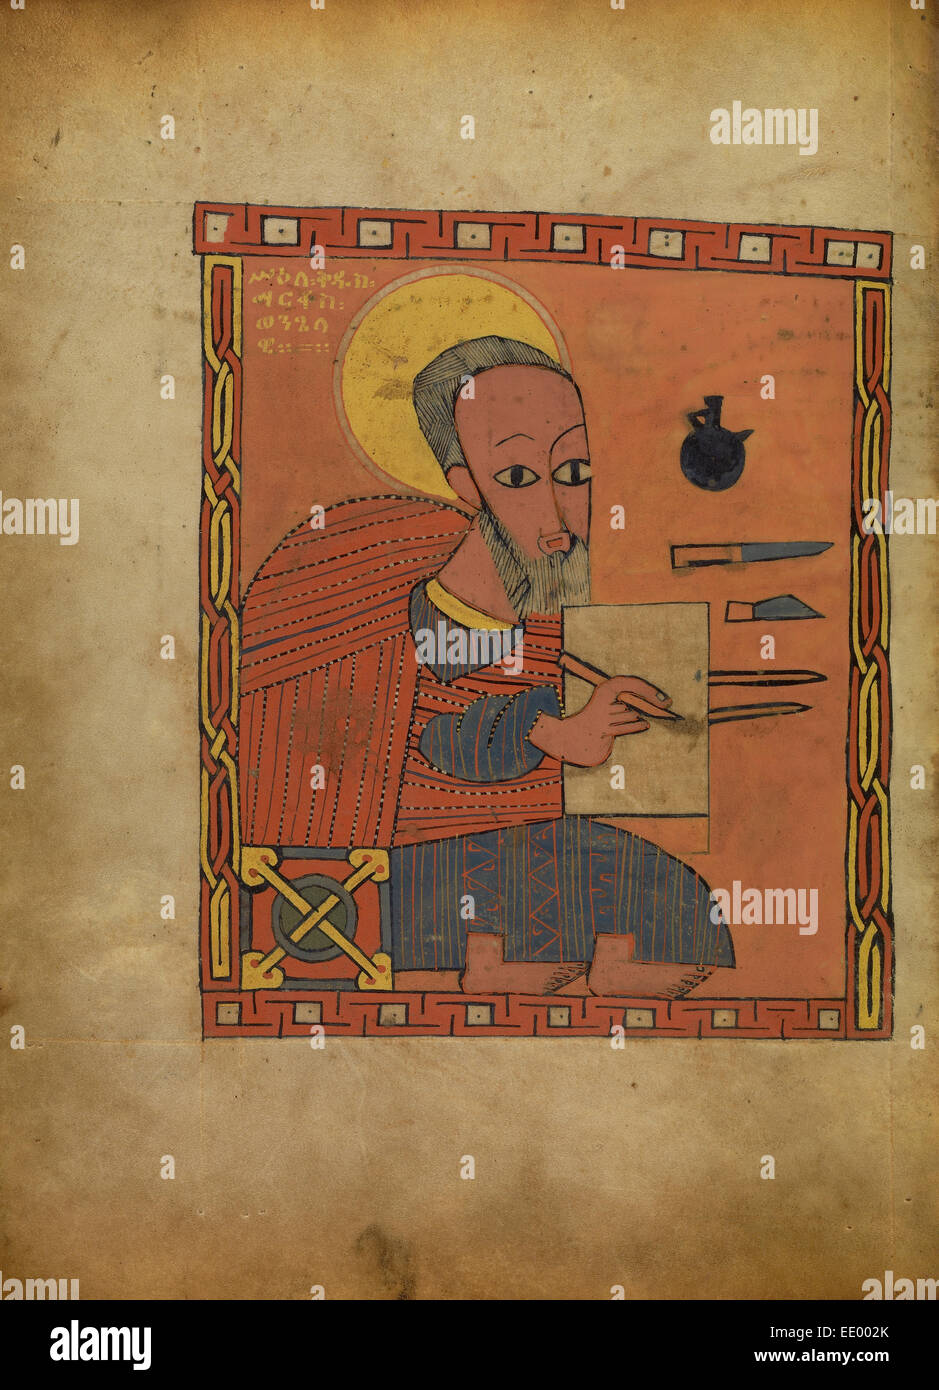 Saint Mark; Unknown; Ethiopia, Africa; about 1480 - 1520; Tempera on parchment - Stock Image